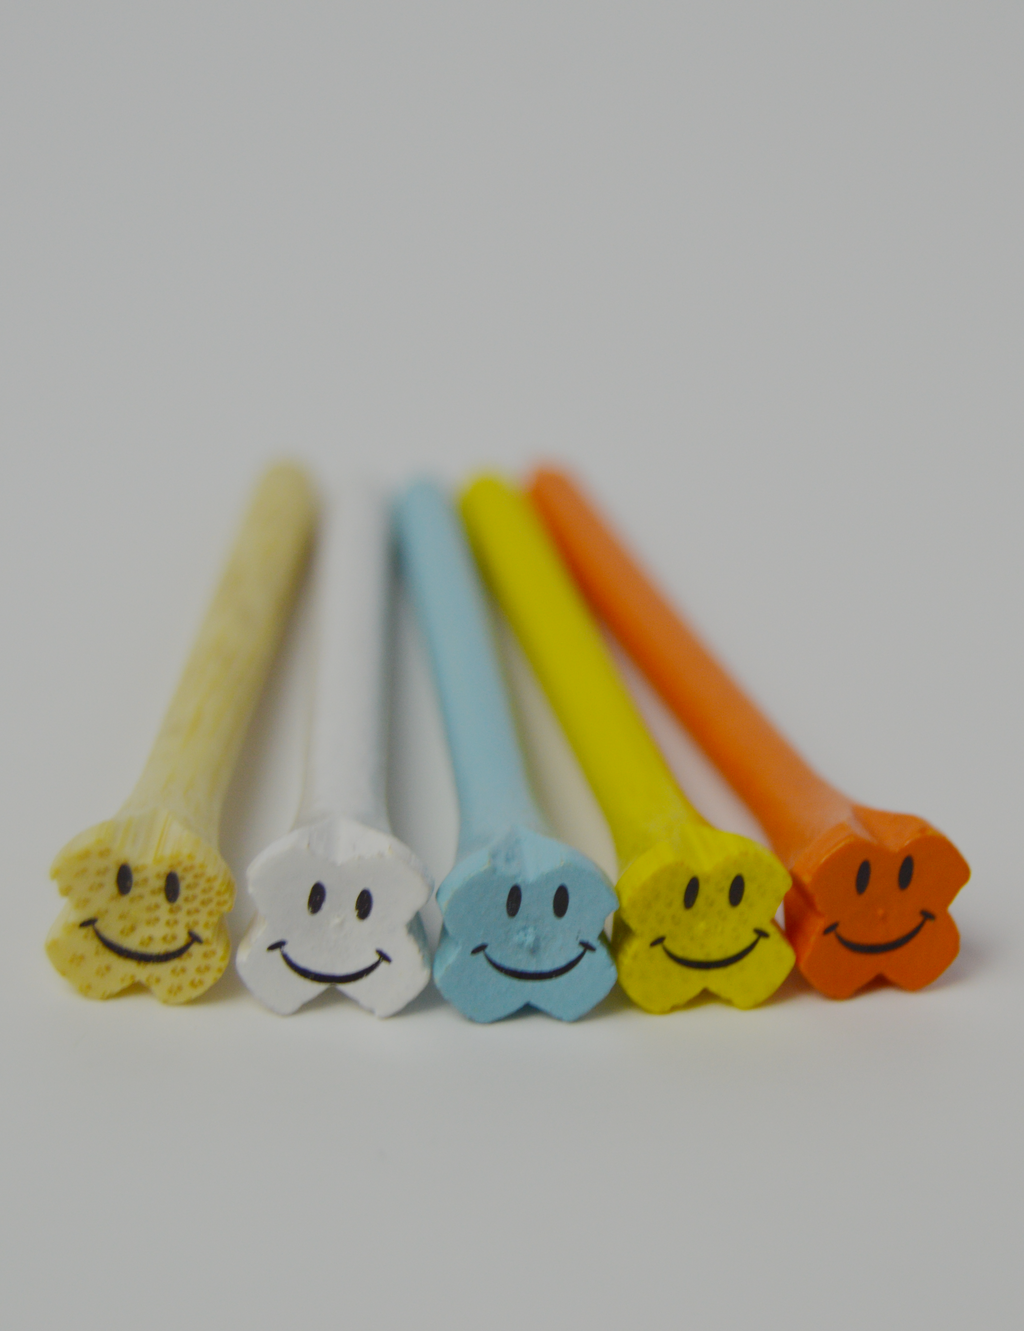 Bamboo Smiley Face Golf Tees - Pack of 15 Tees